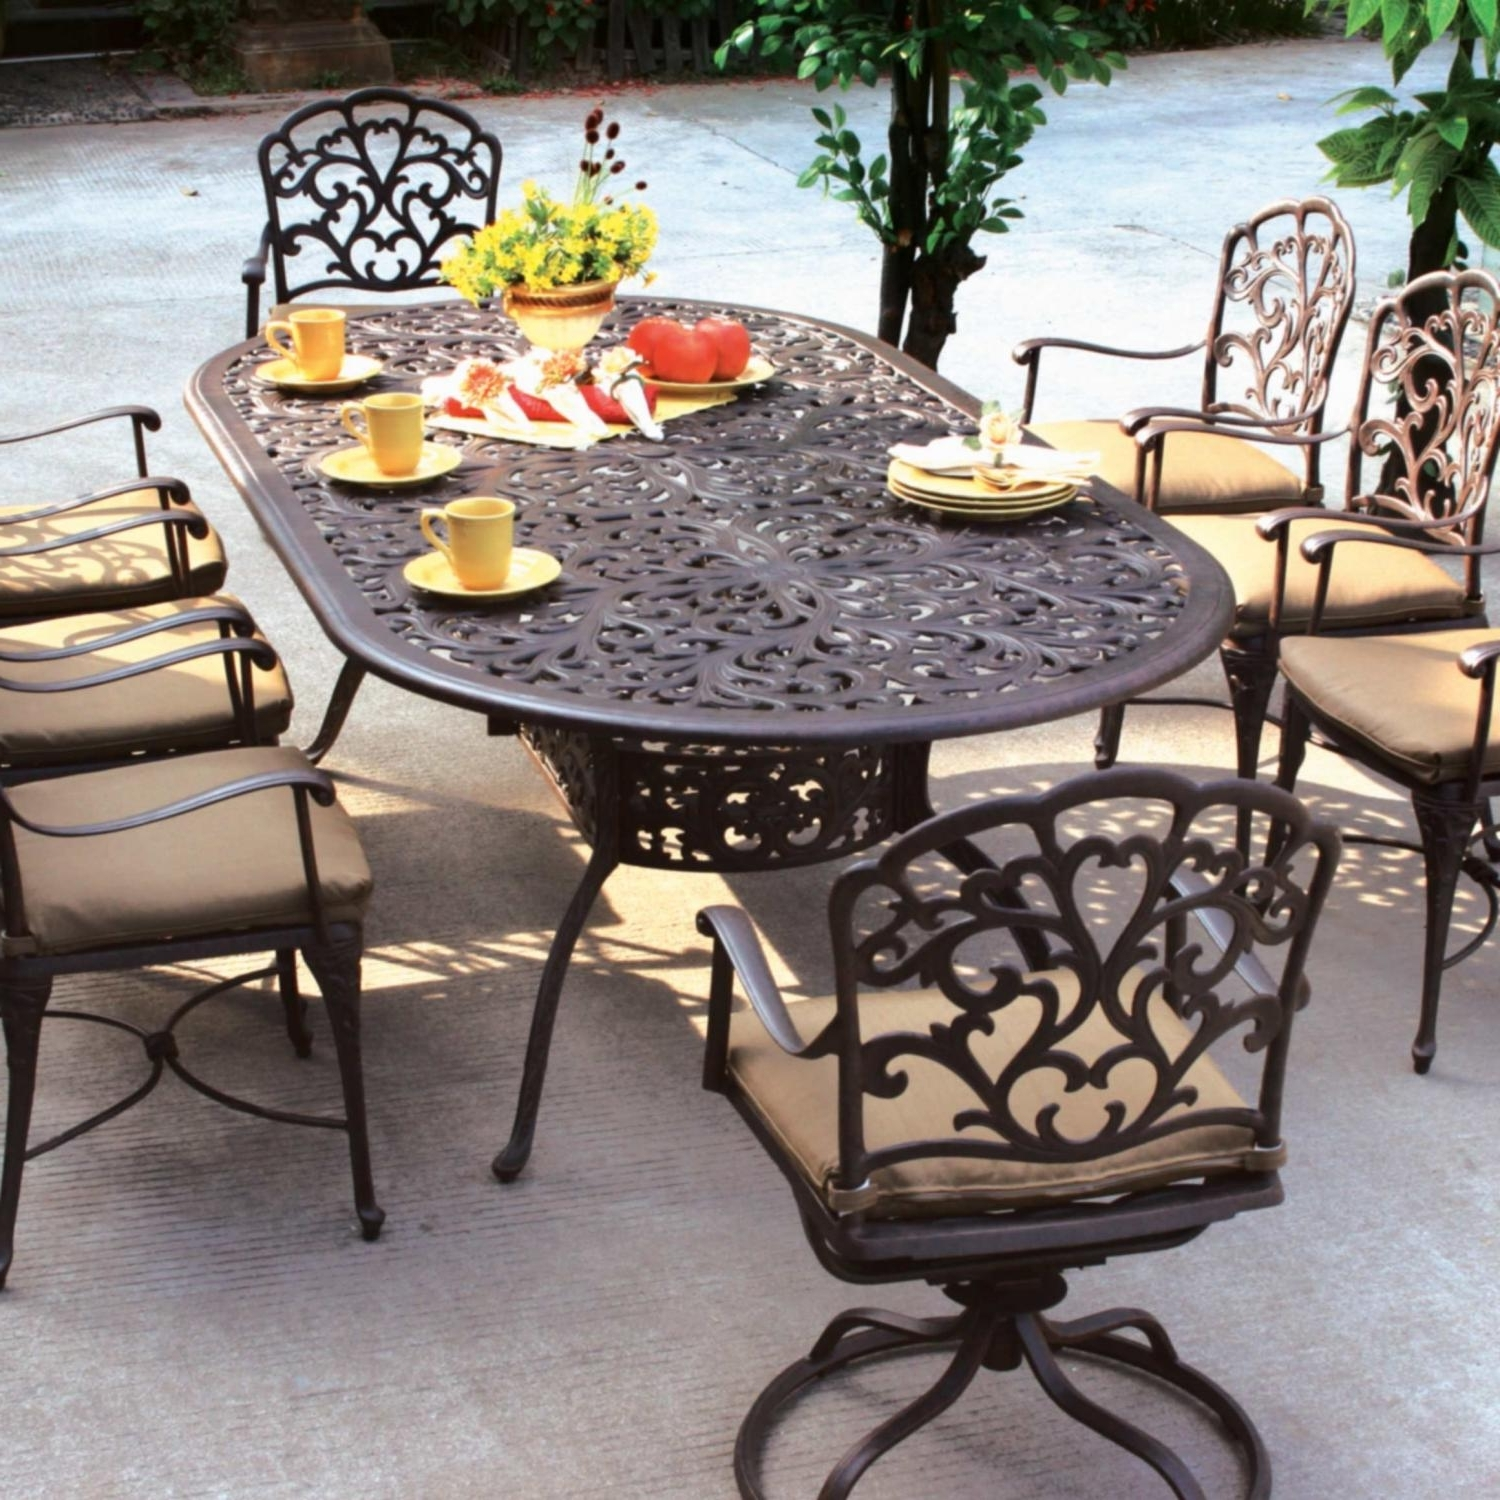 2018 Patio Dining Table And Chairs Costco Patio Furniture For Padded In Outdoor Dining Table And Chairs Sets (View 5 of 25)